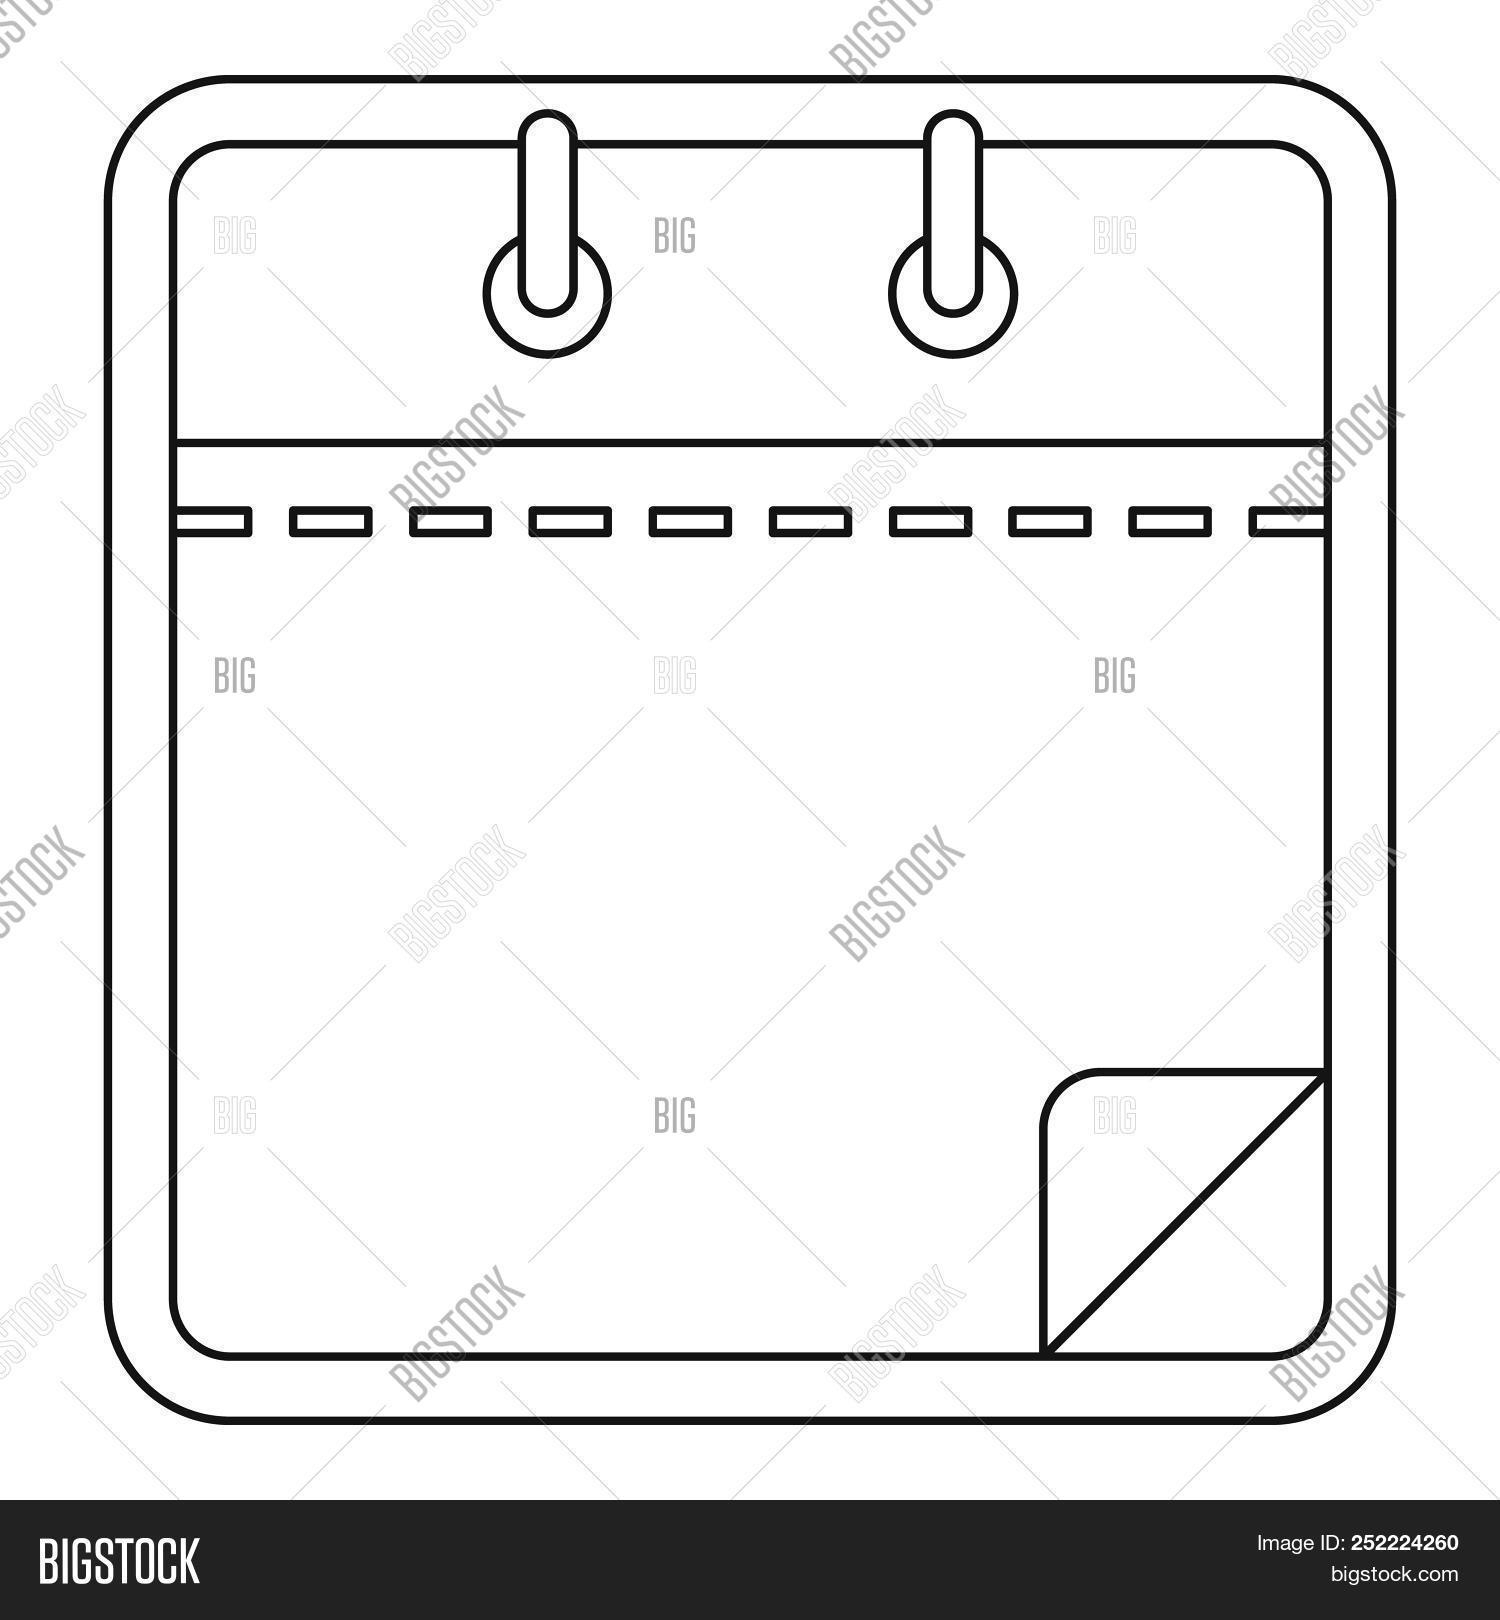 Blank Calendar Icon. Image & Photo (Free Trial) | Bigstock regarding Free Images Generic Calendar Icon